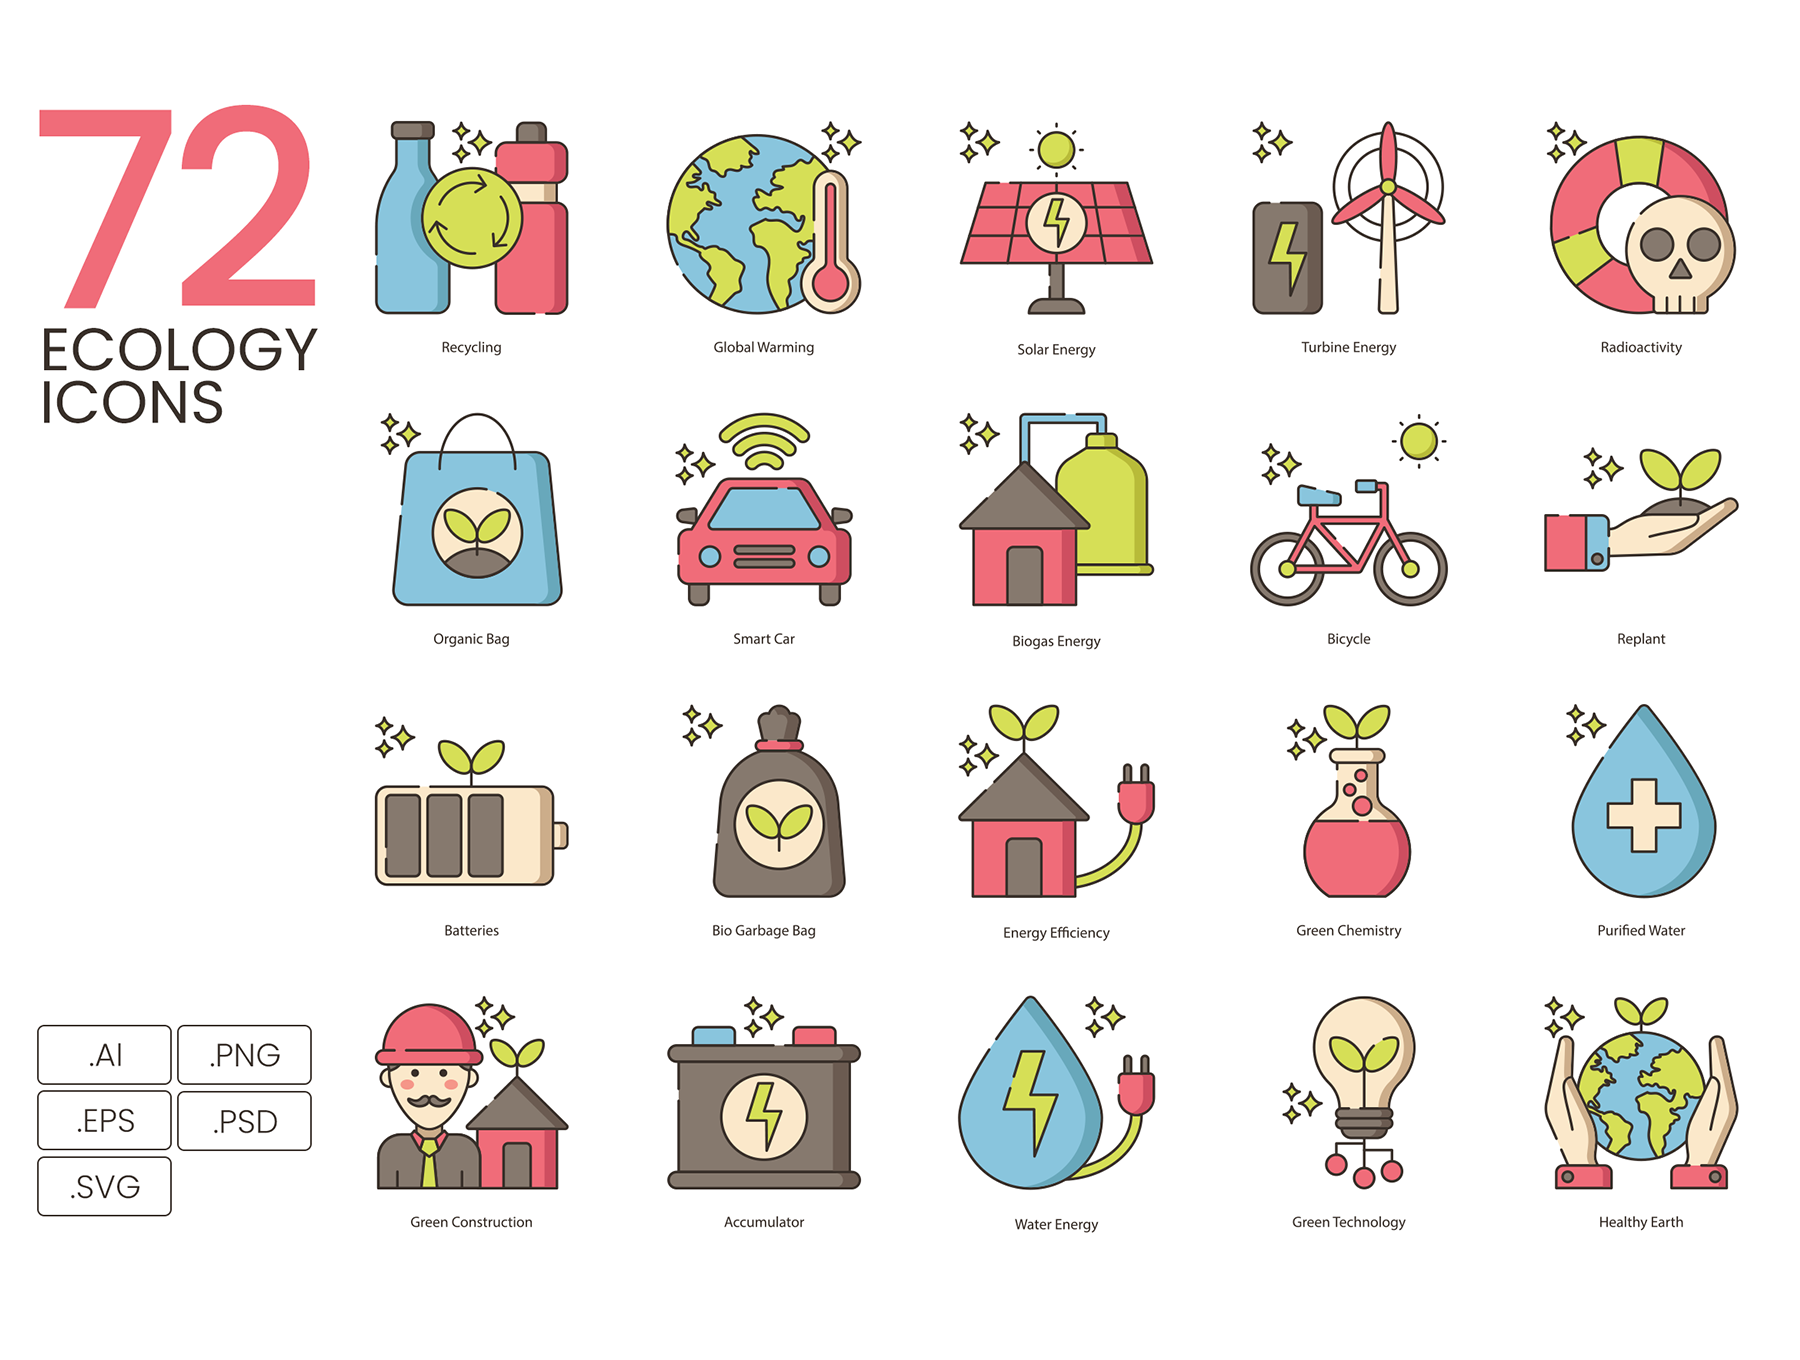 ecology-icons-ui8-detail-image-5_1544766183199.png